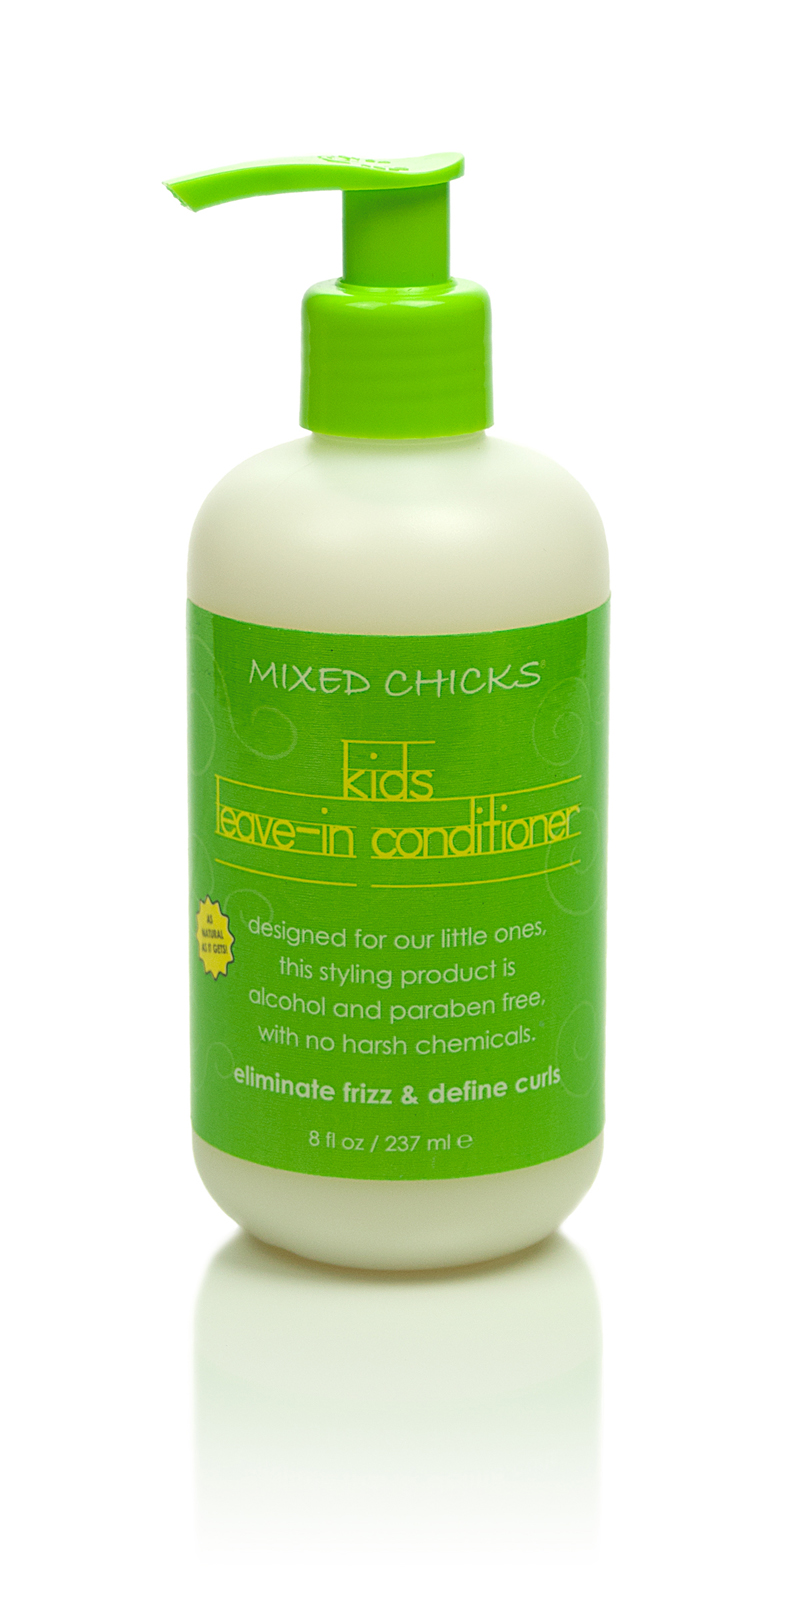 Curly and wavy hair conditioner for kids - Mixed Chicks ...